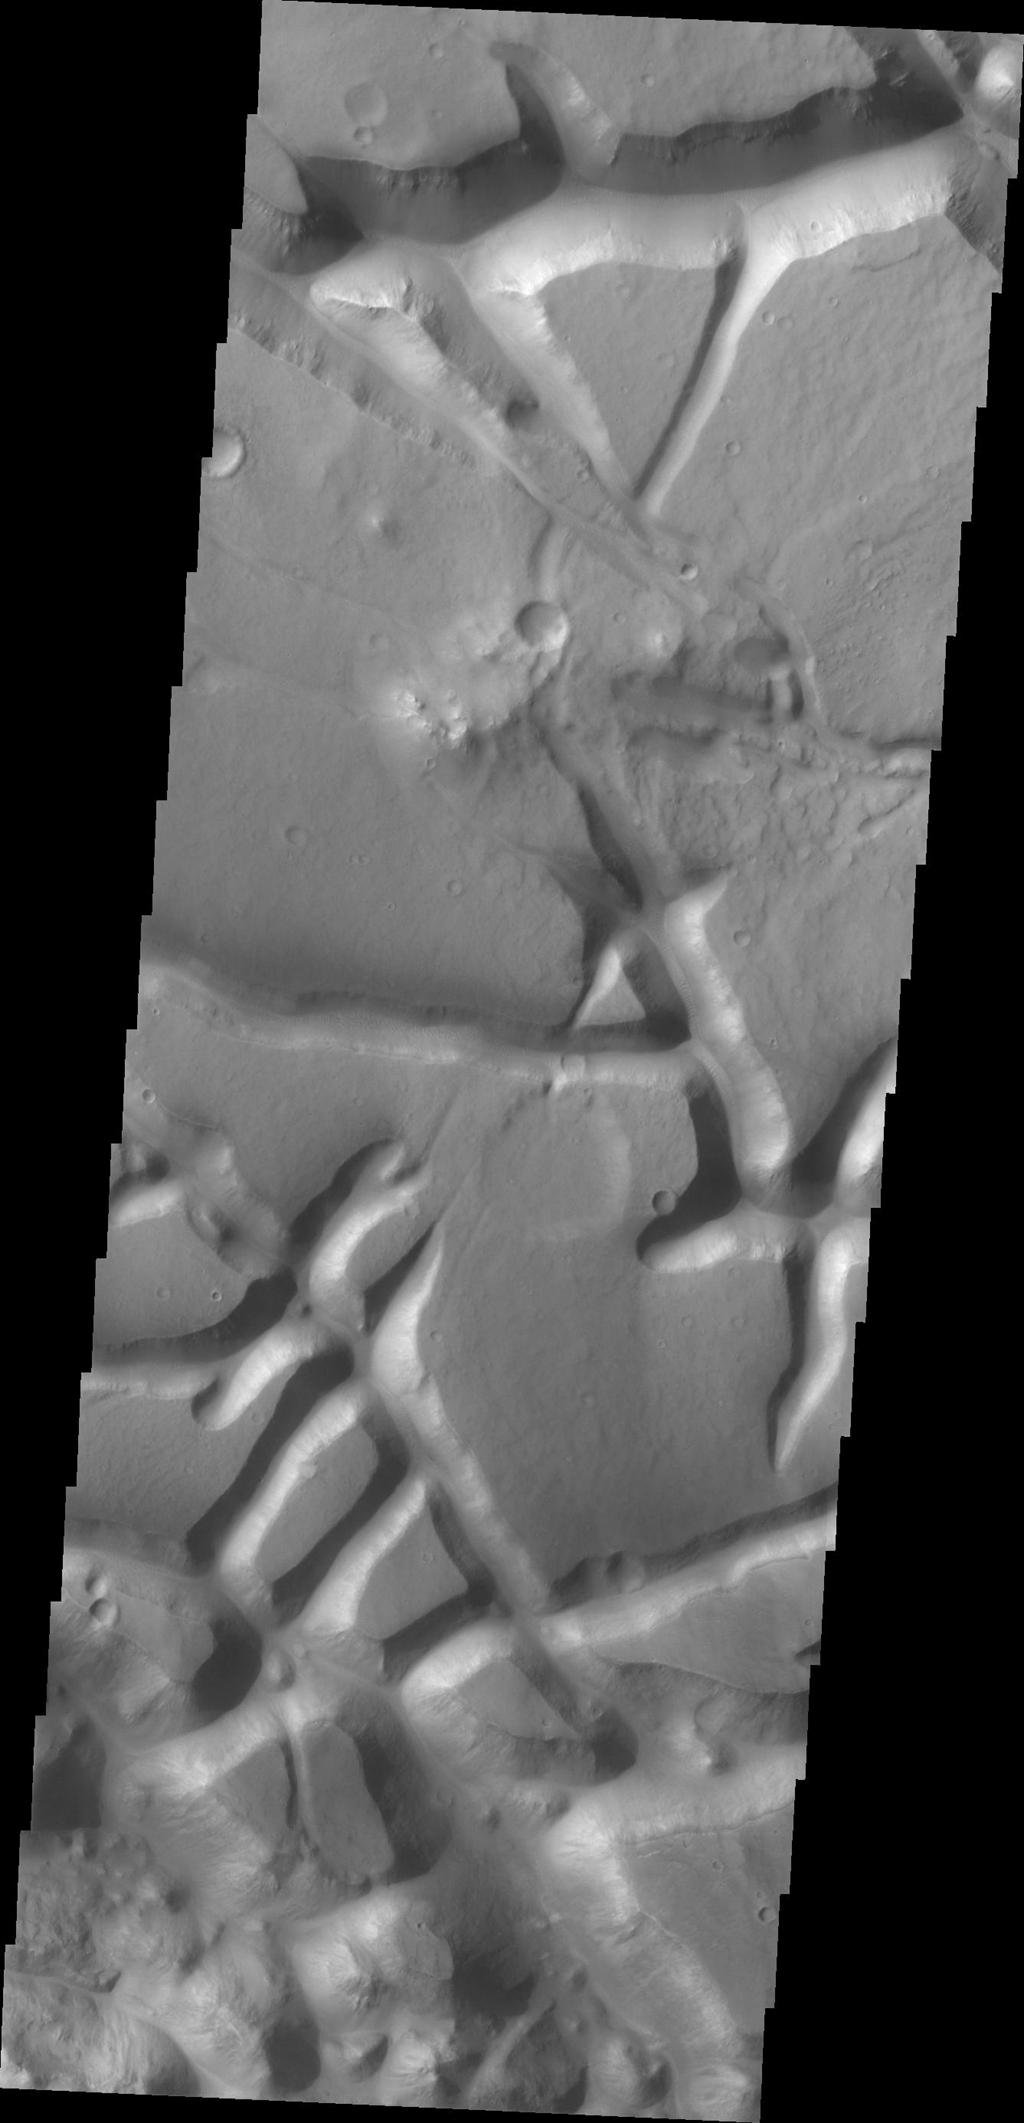 The tectonic fractures in this image captured by NASA's Mars Odyssey on July 8, 2010 are part of Aram Chaos.